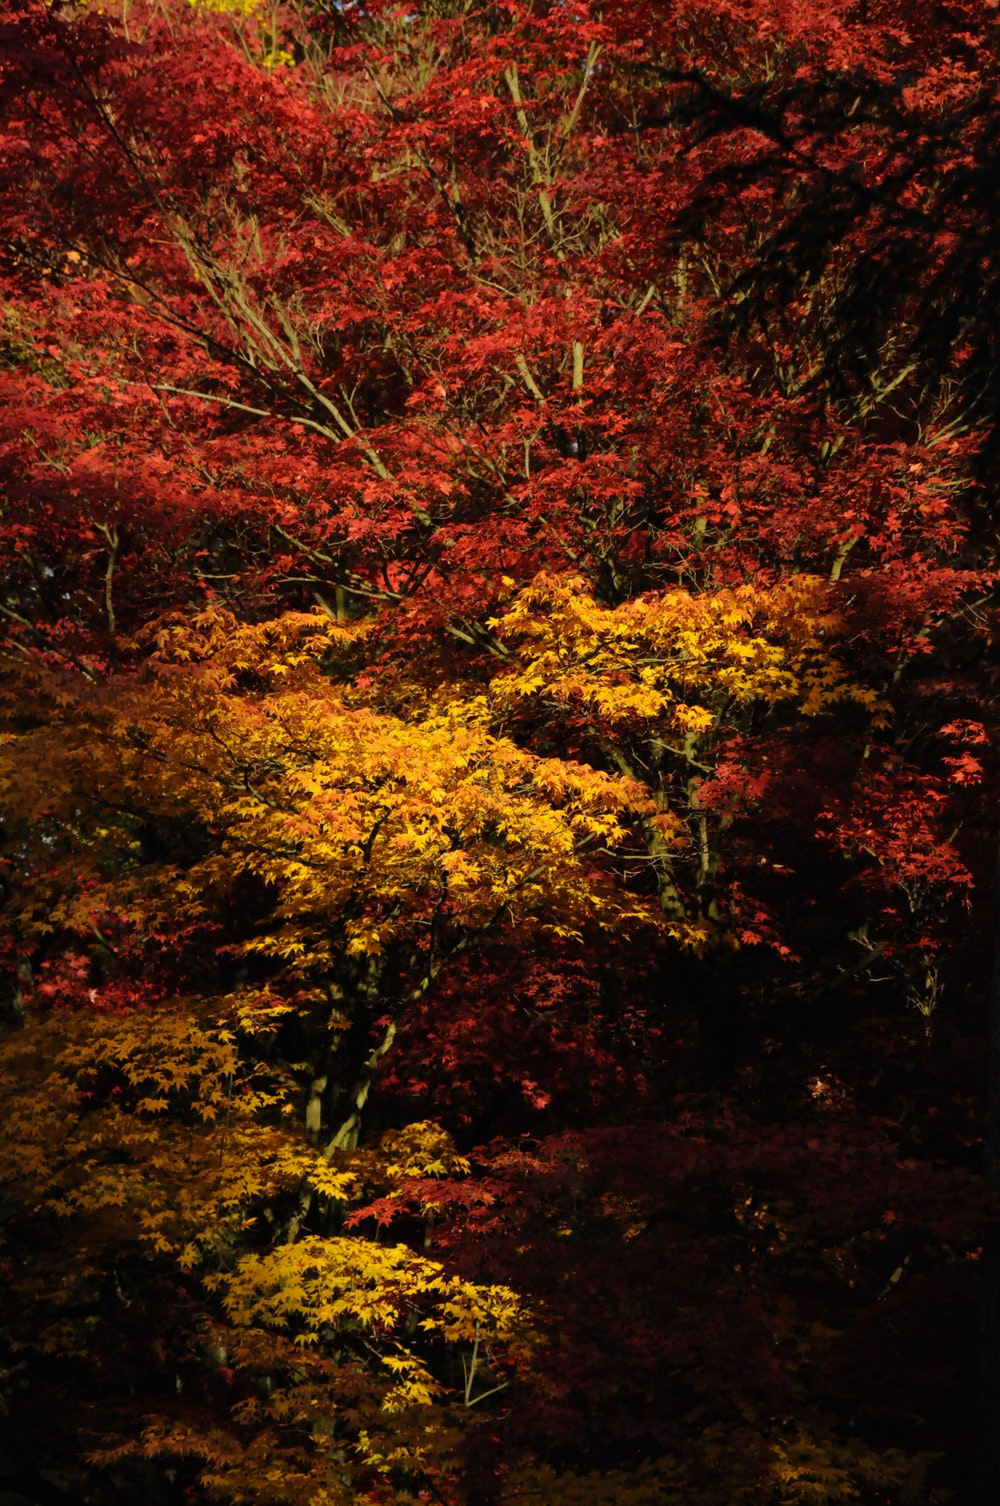 red and yellow leaves on ground